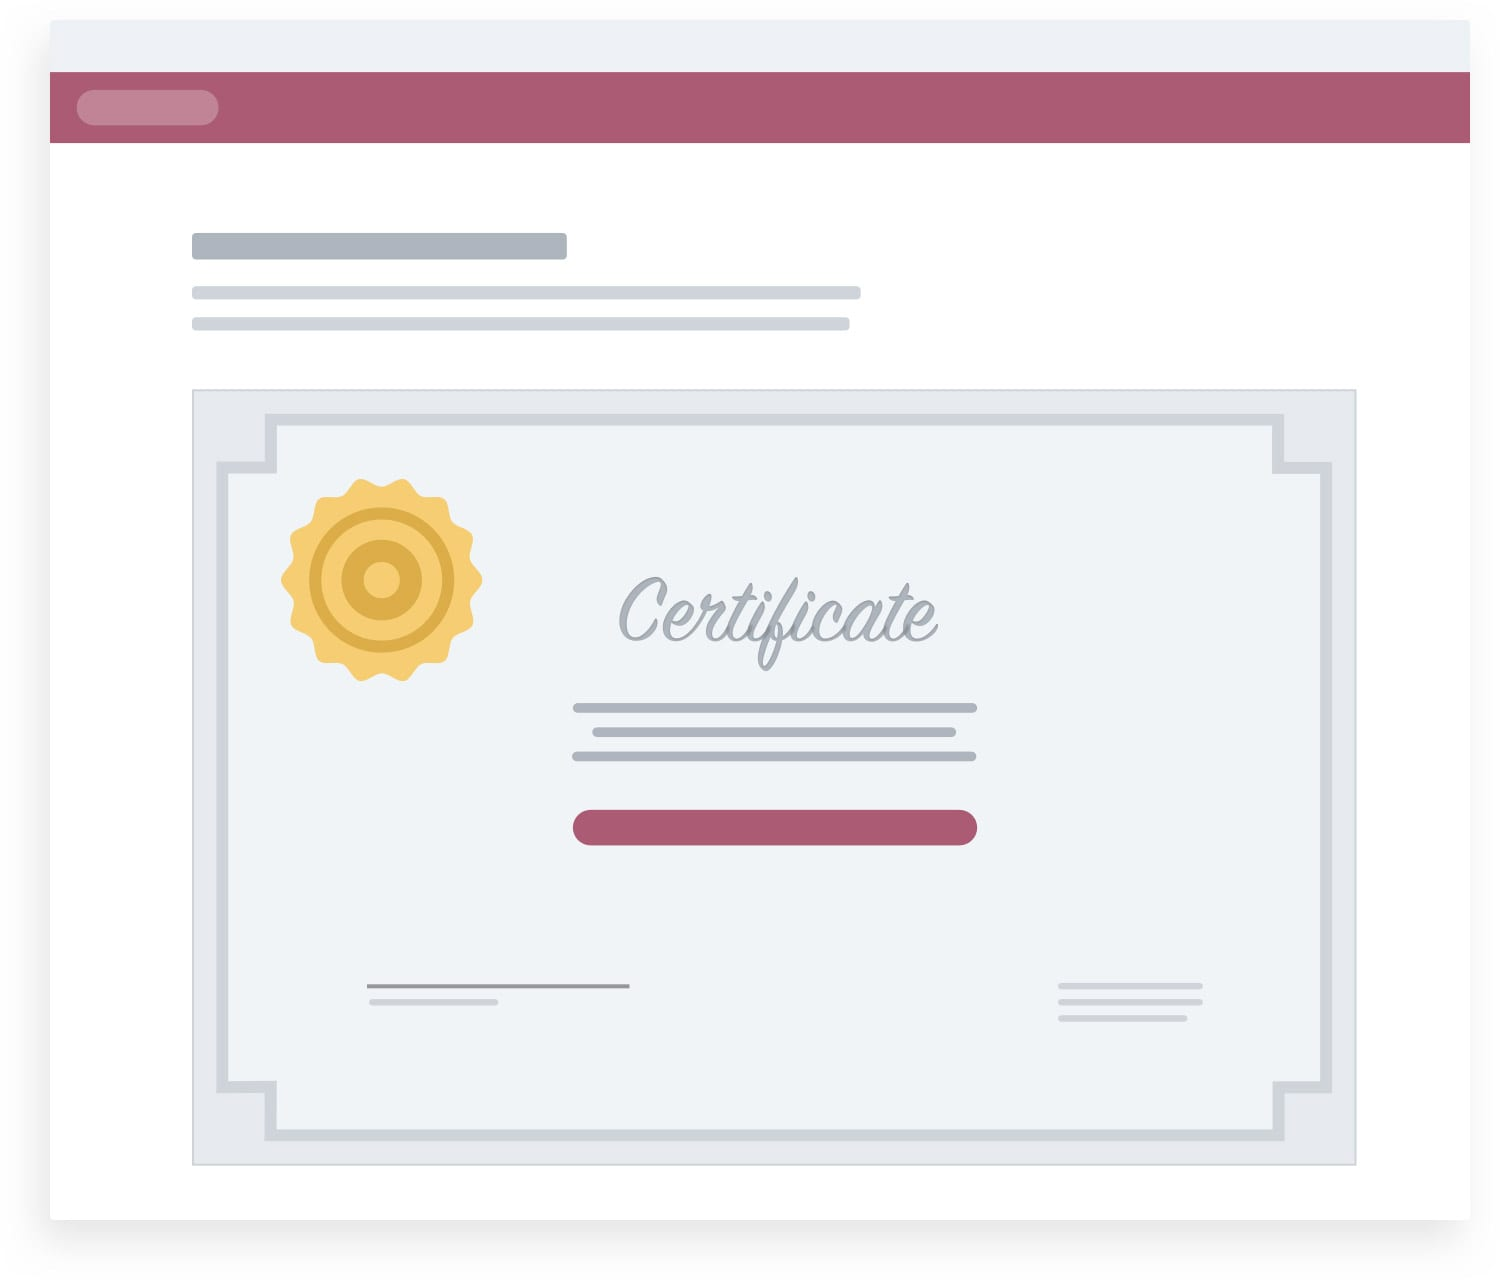 Customer Training Certificates